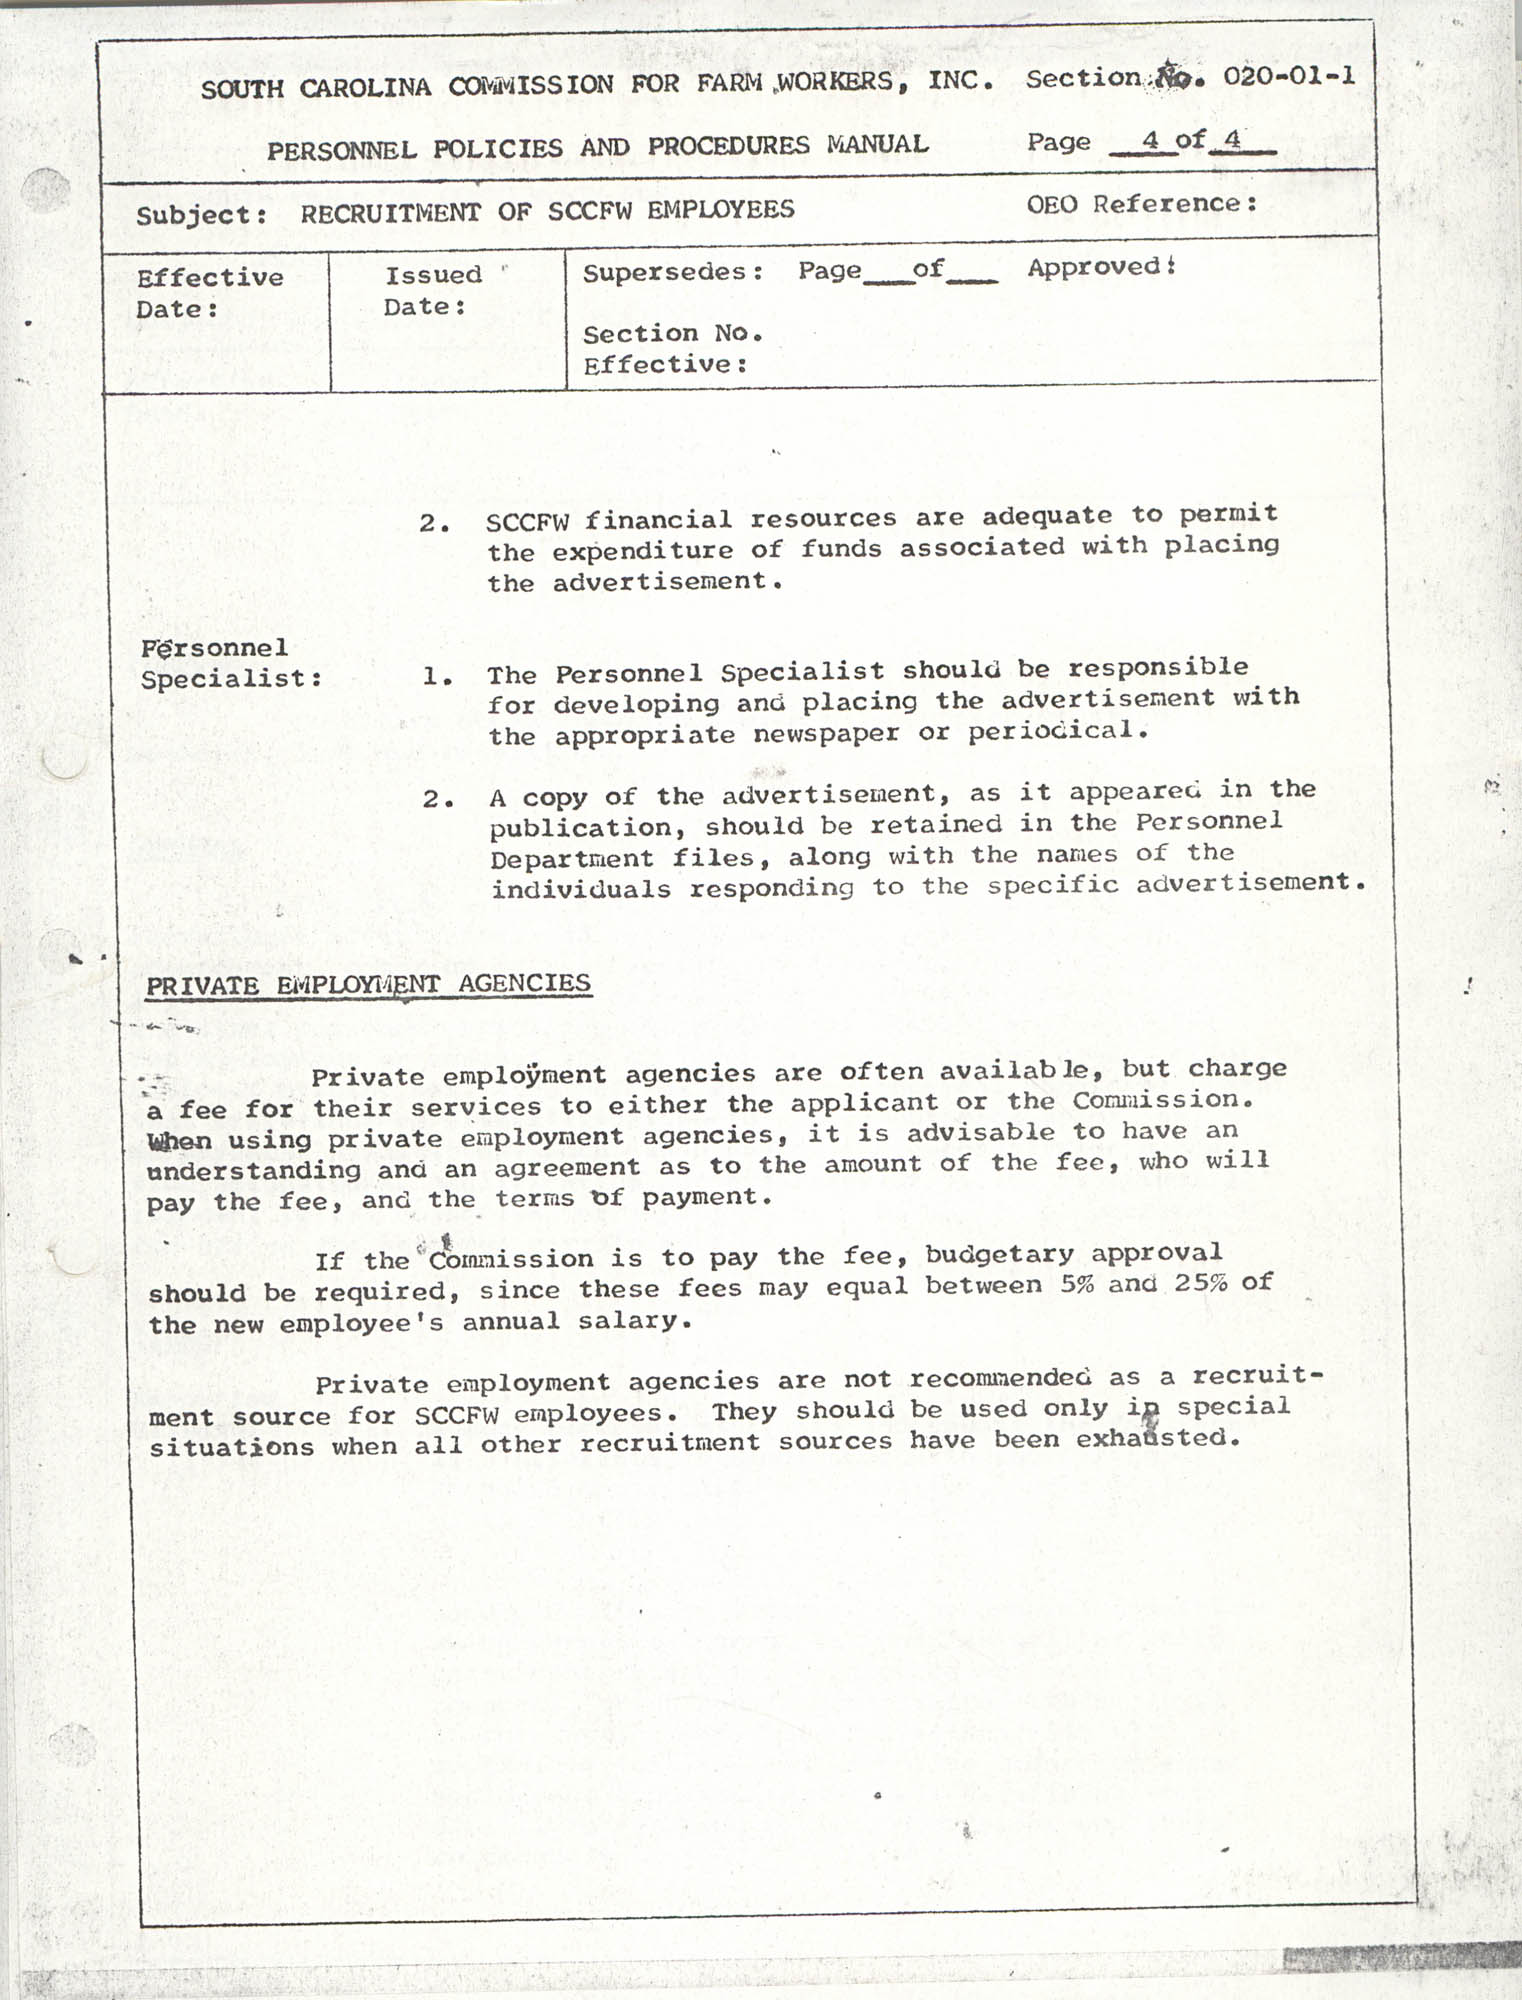 Personnel Policies and Procedures Manual, Section No. 020-01-1, Page 4